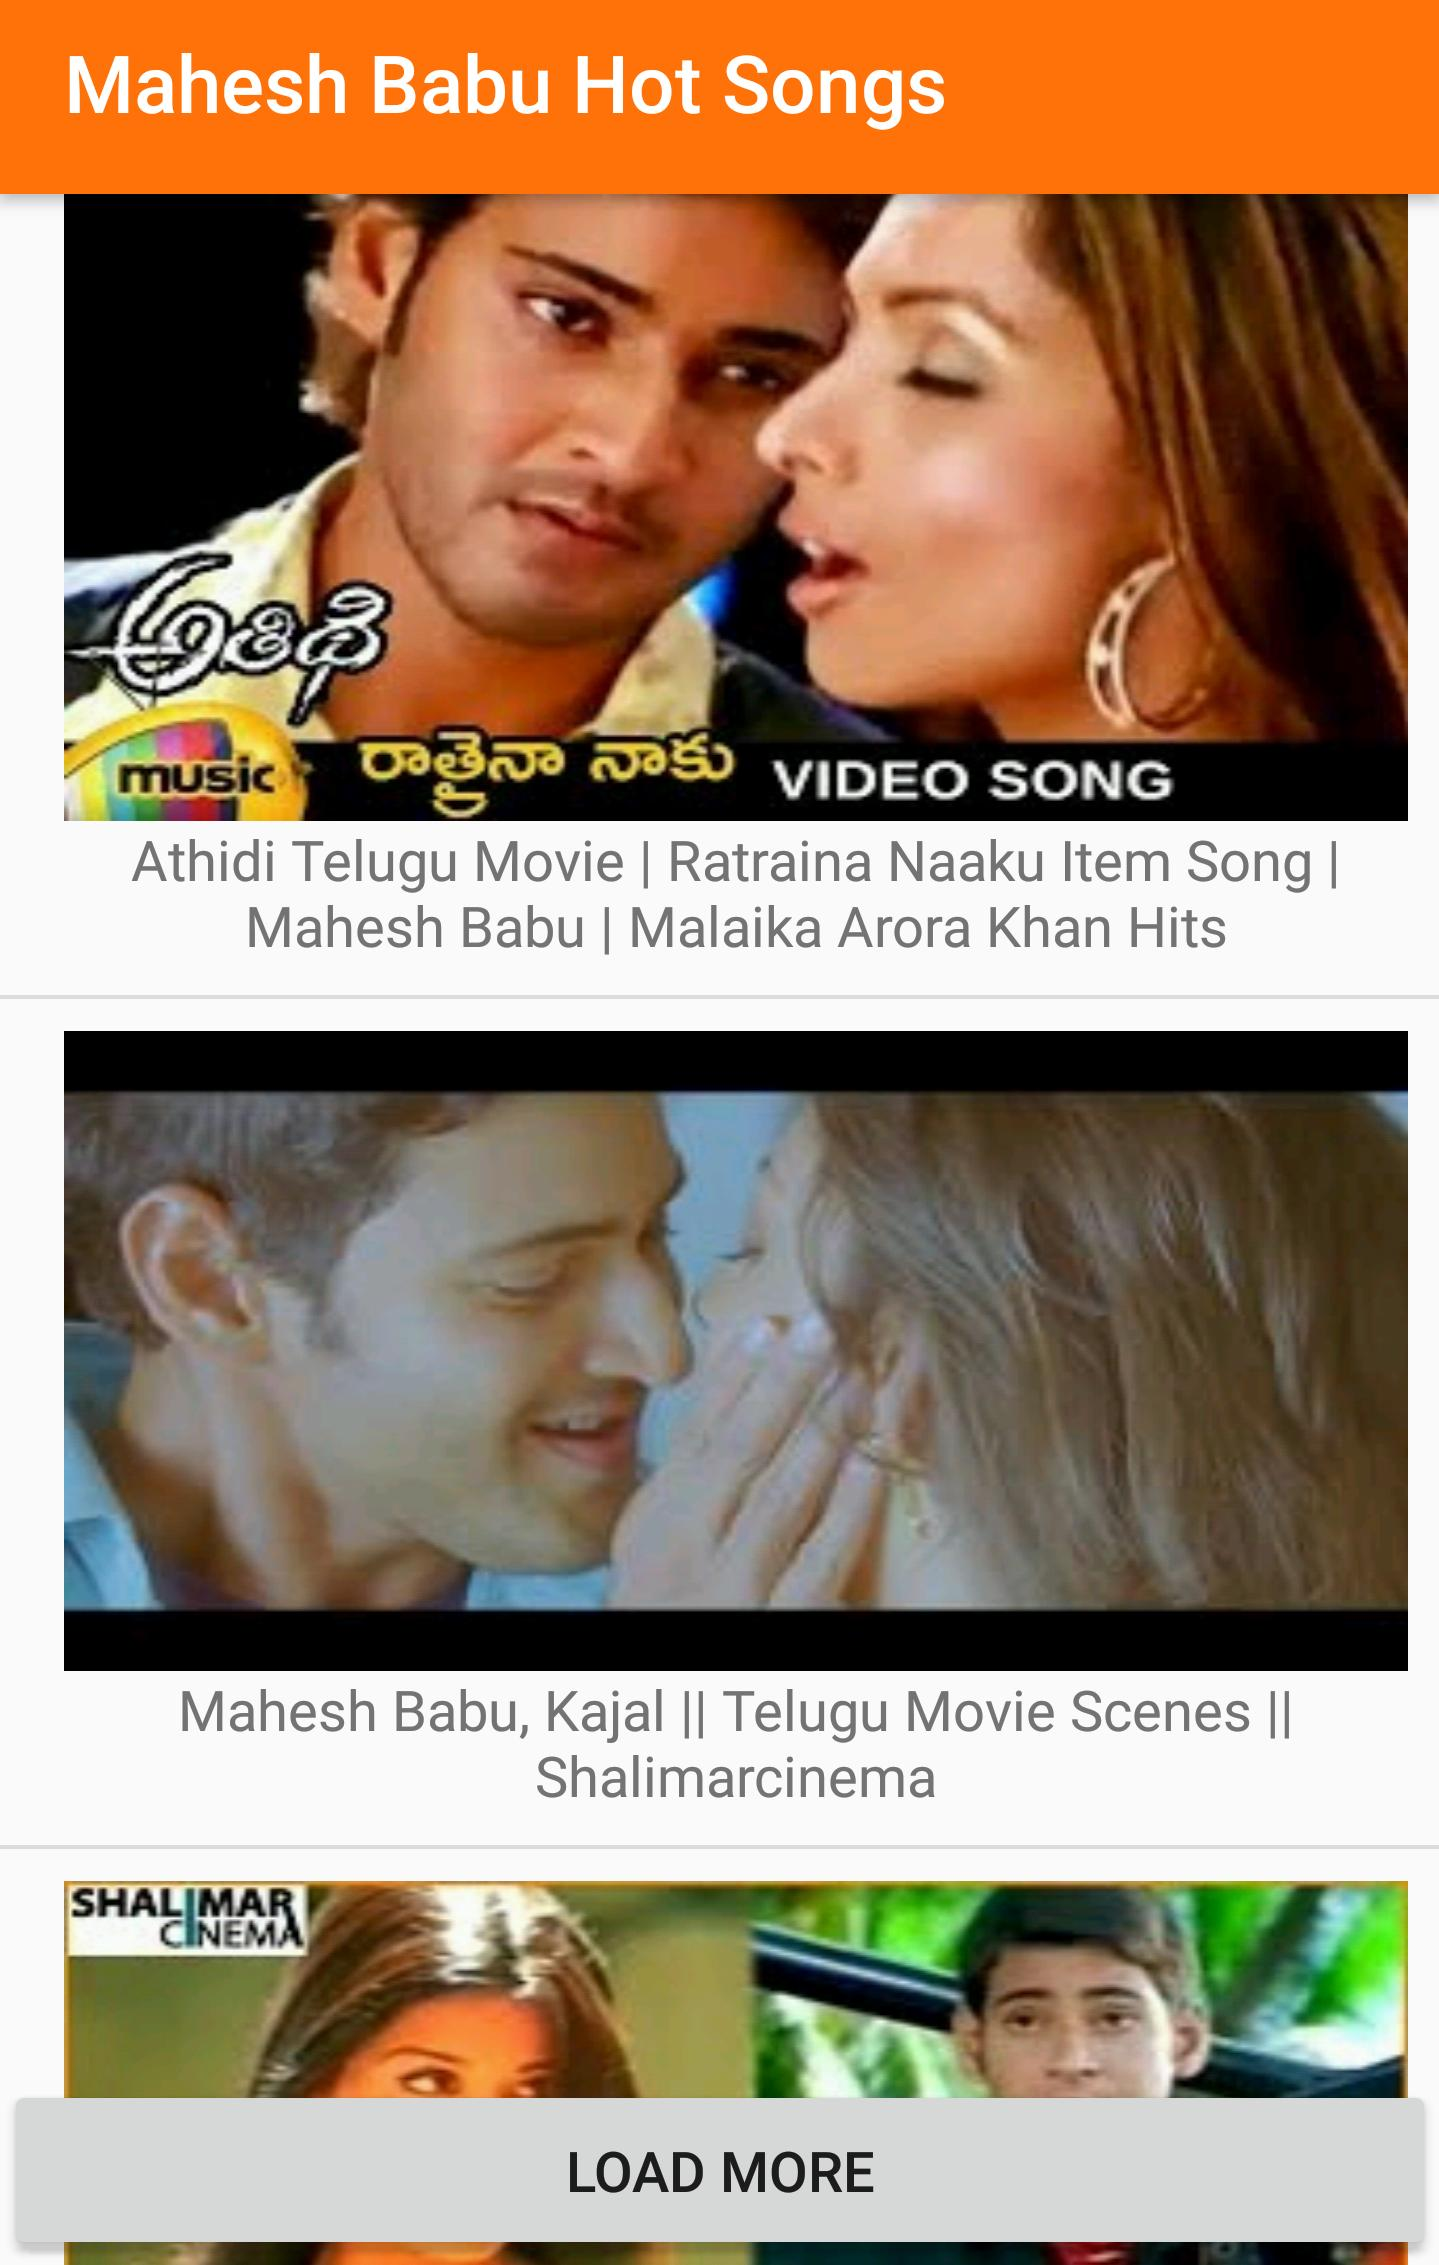 MAHESH BABU - Movies Videos Songs for Android - APK Download